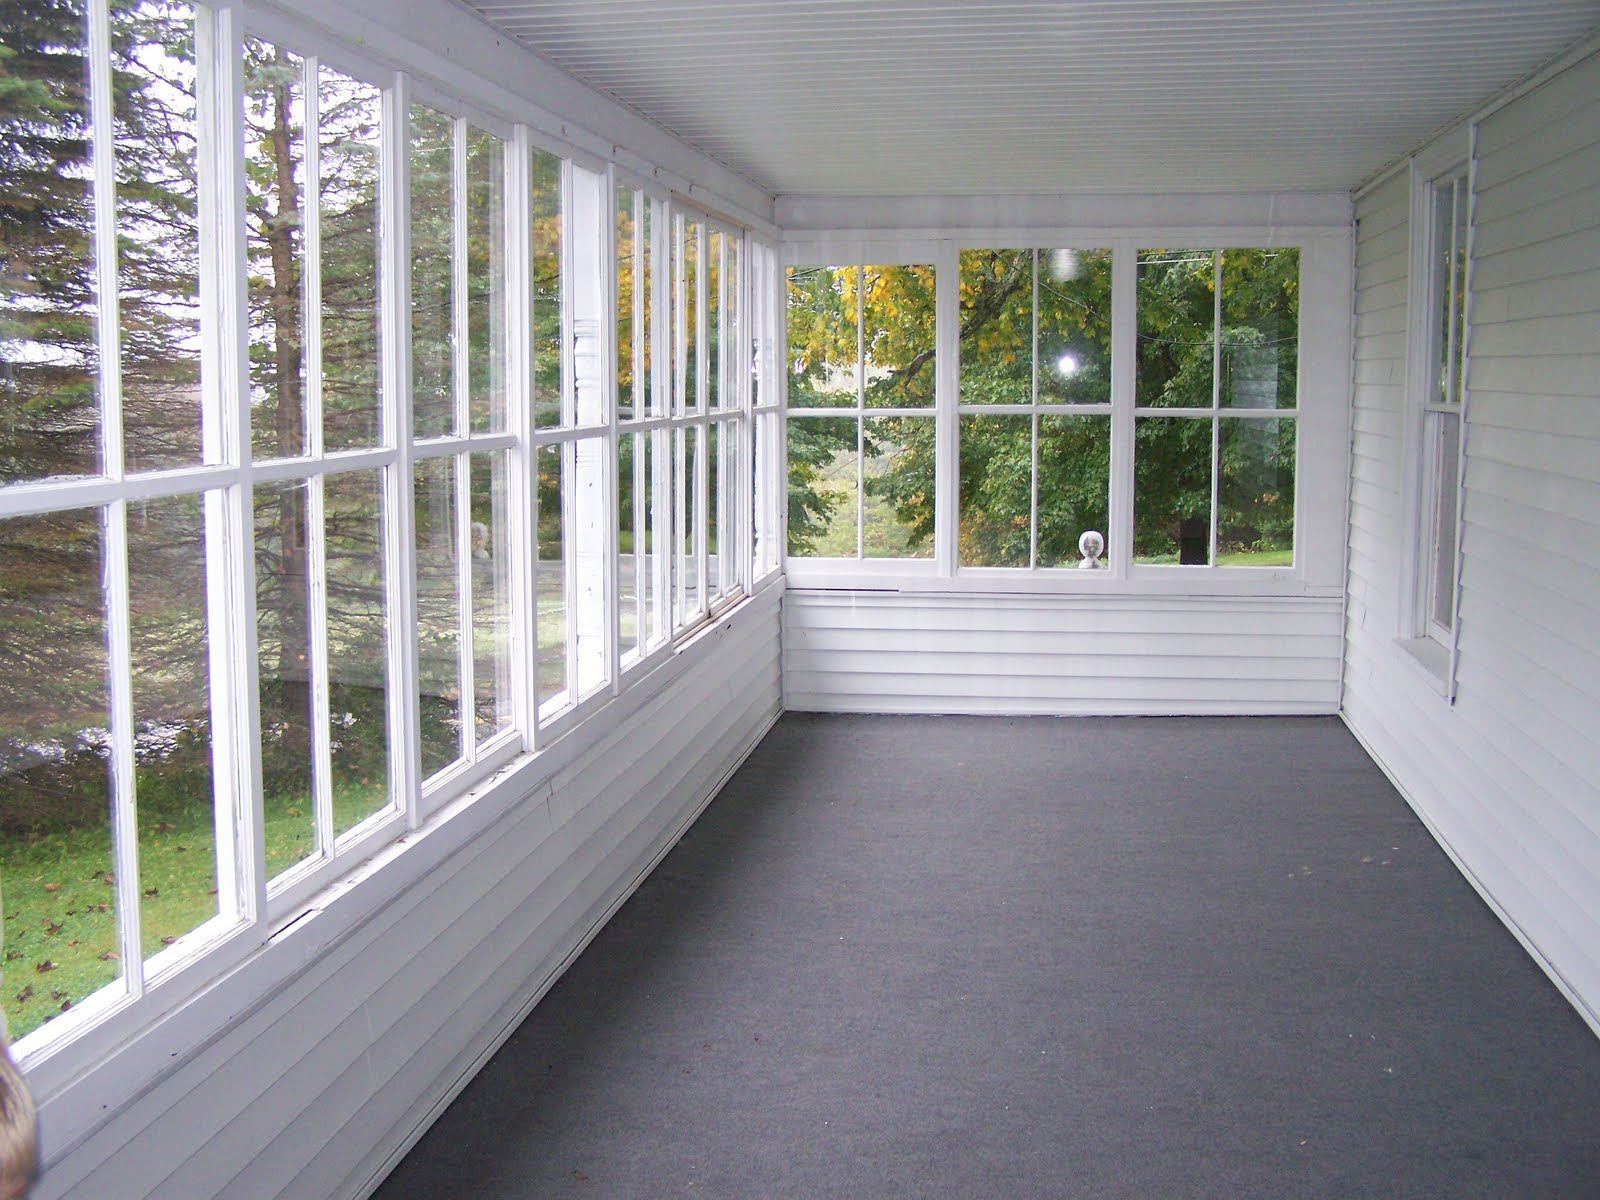 Enclosed porch ideas on pinterest enclosed patio for Small enclosed patio design ideas